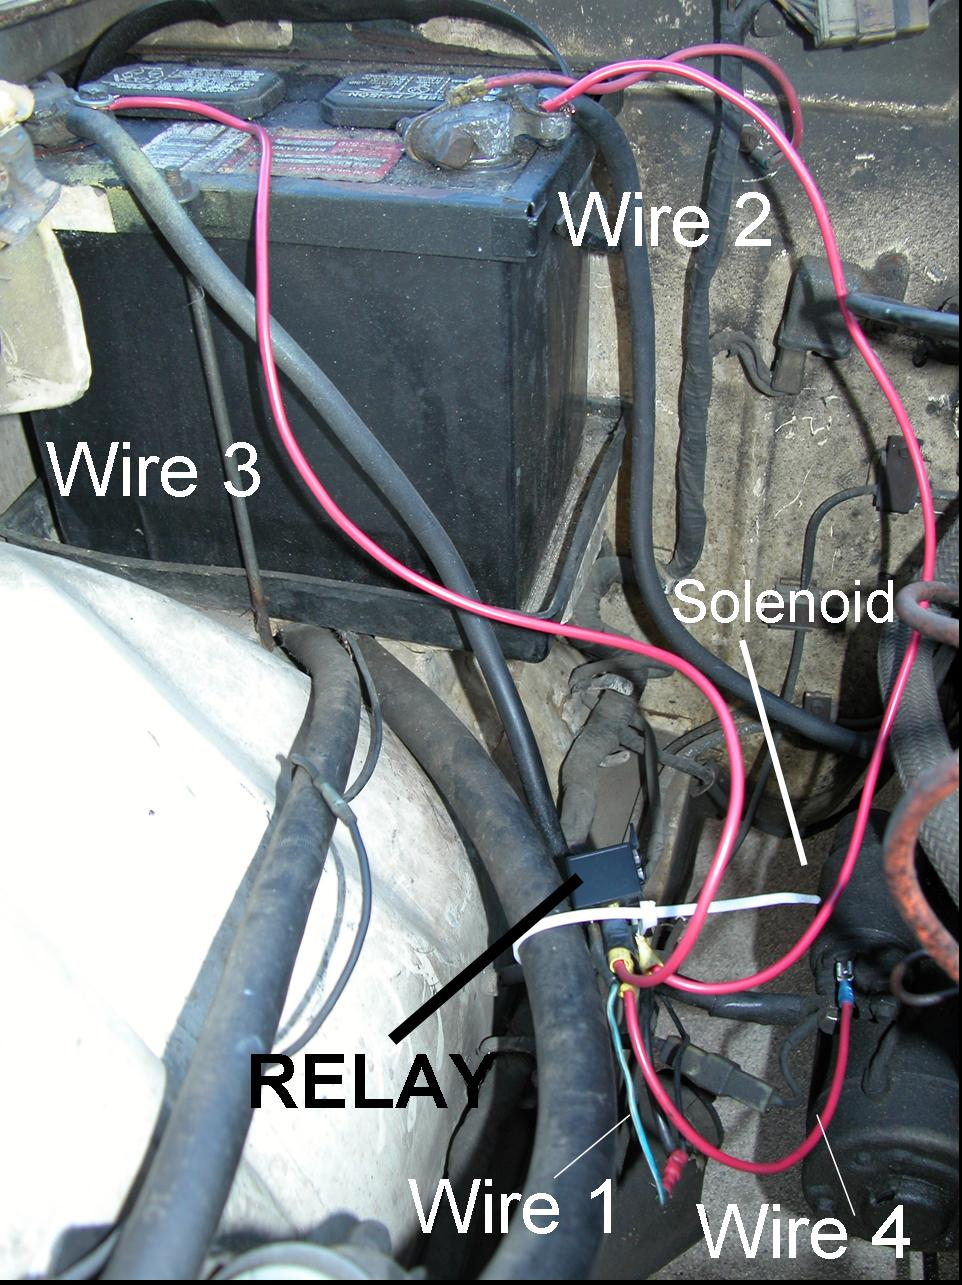 How To Read A Schematic furthermore Mag ic Under Cabi  12 Volt Transformer Wiring Diagram furthermore G together with Table Fan Wiring Diagrams further Another revolutionary idea from capitalism. on circuit diagram drawer 3